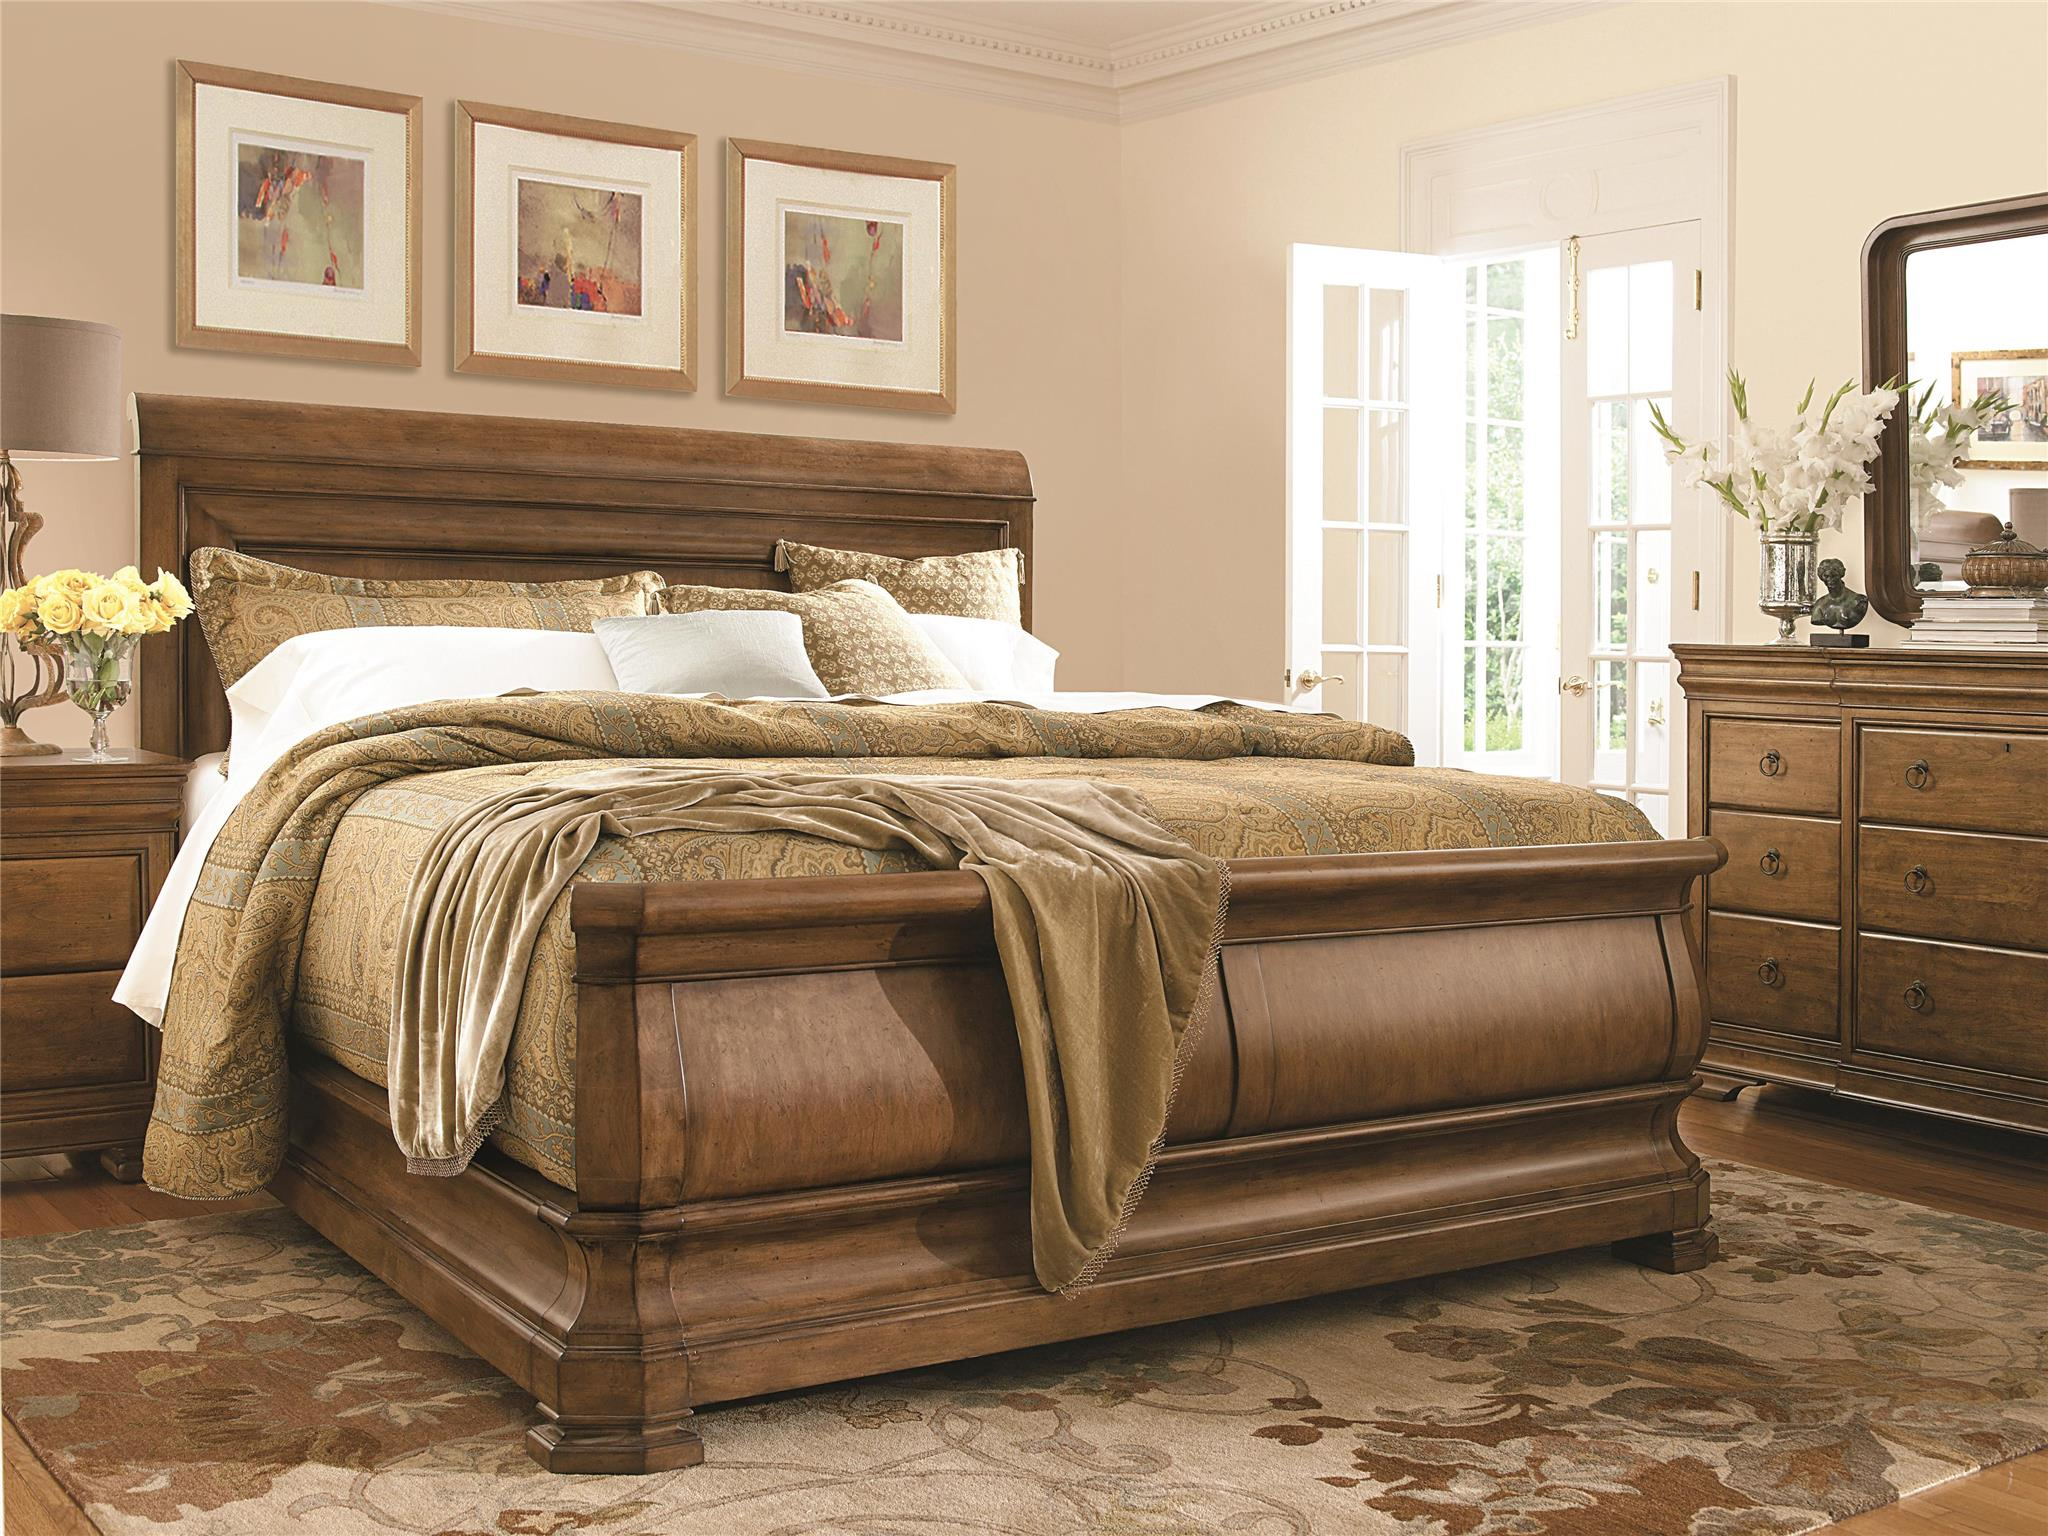 Cool headboars king sleigh bed with royal duvet cover and luxury sheets also unique area rug above laminate flooring ideas